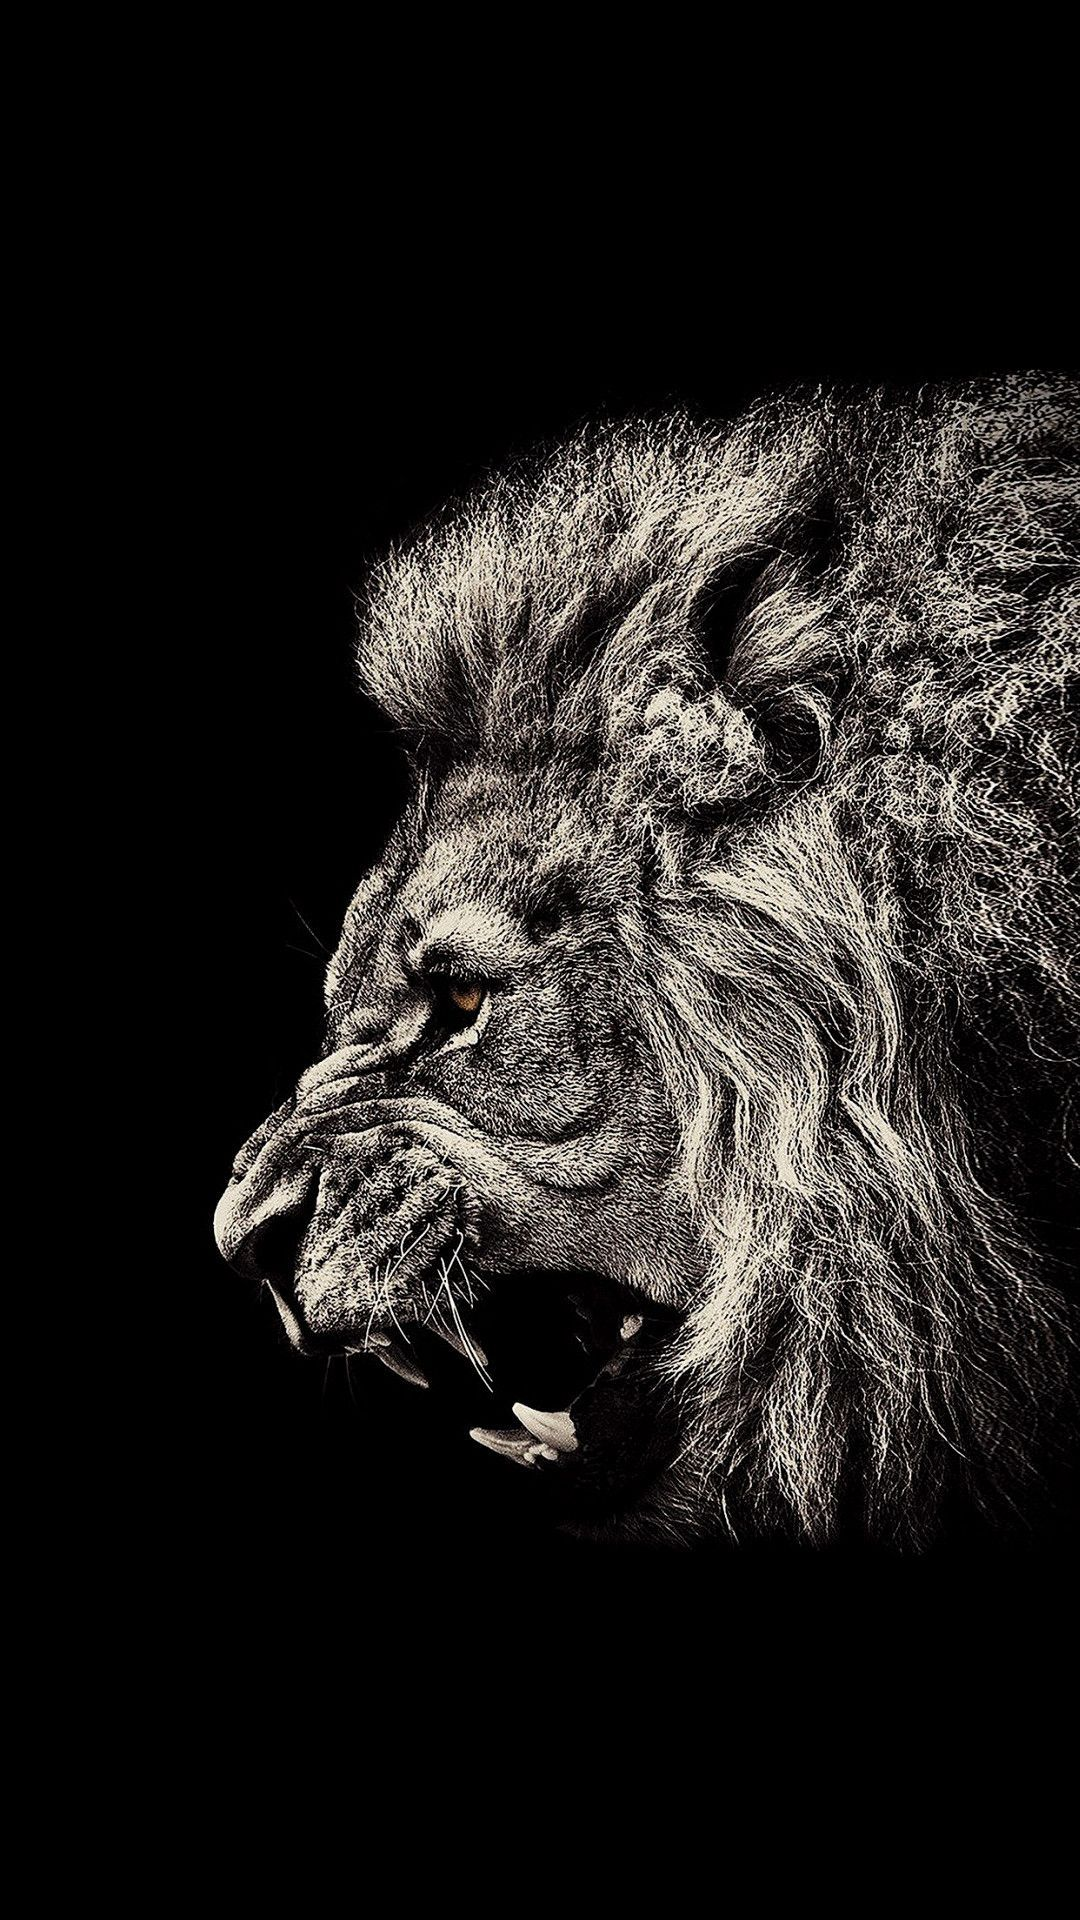 Black Lion Wallpaper » Hupages » Download Iphone Wallpapers #blackwallpaperiphone